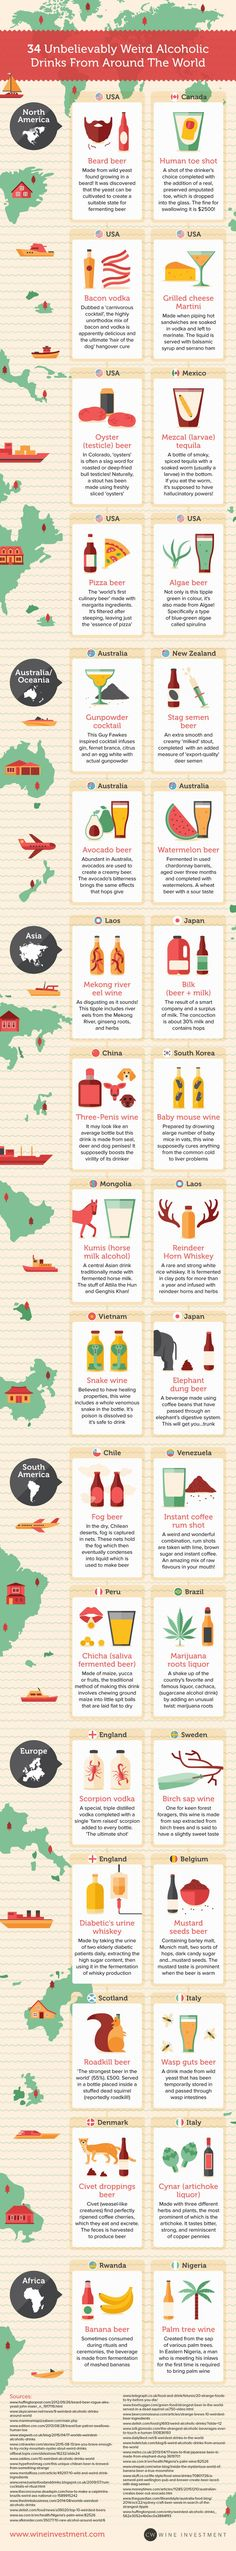 34 Unbelievably Weird Alcoholic Drinks From Around The World #Infographic #Food #Travel